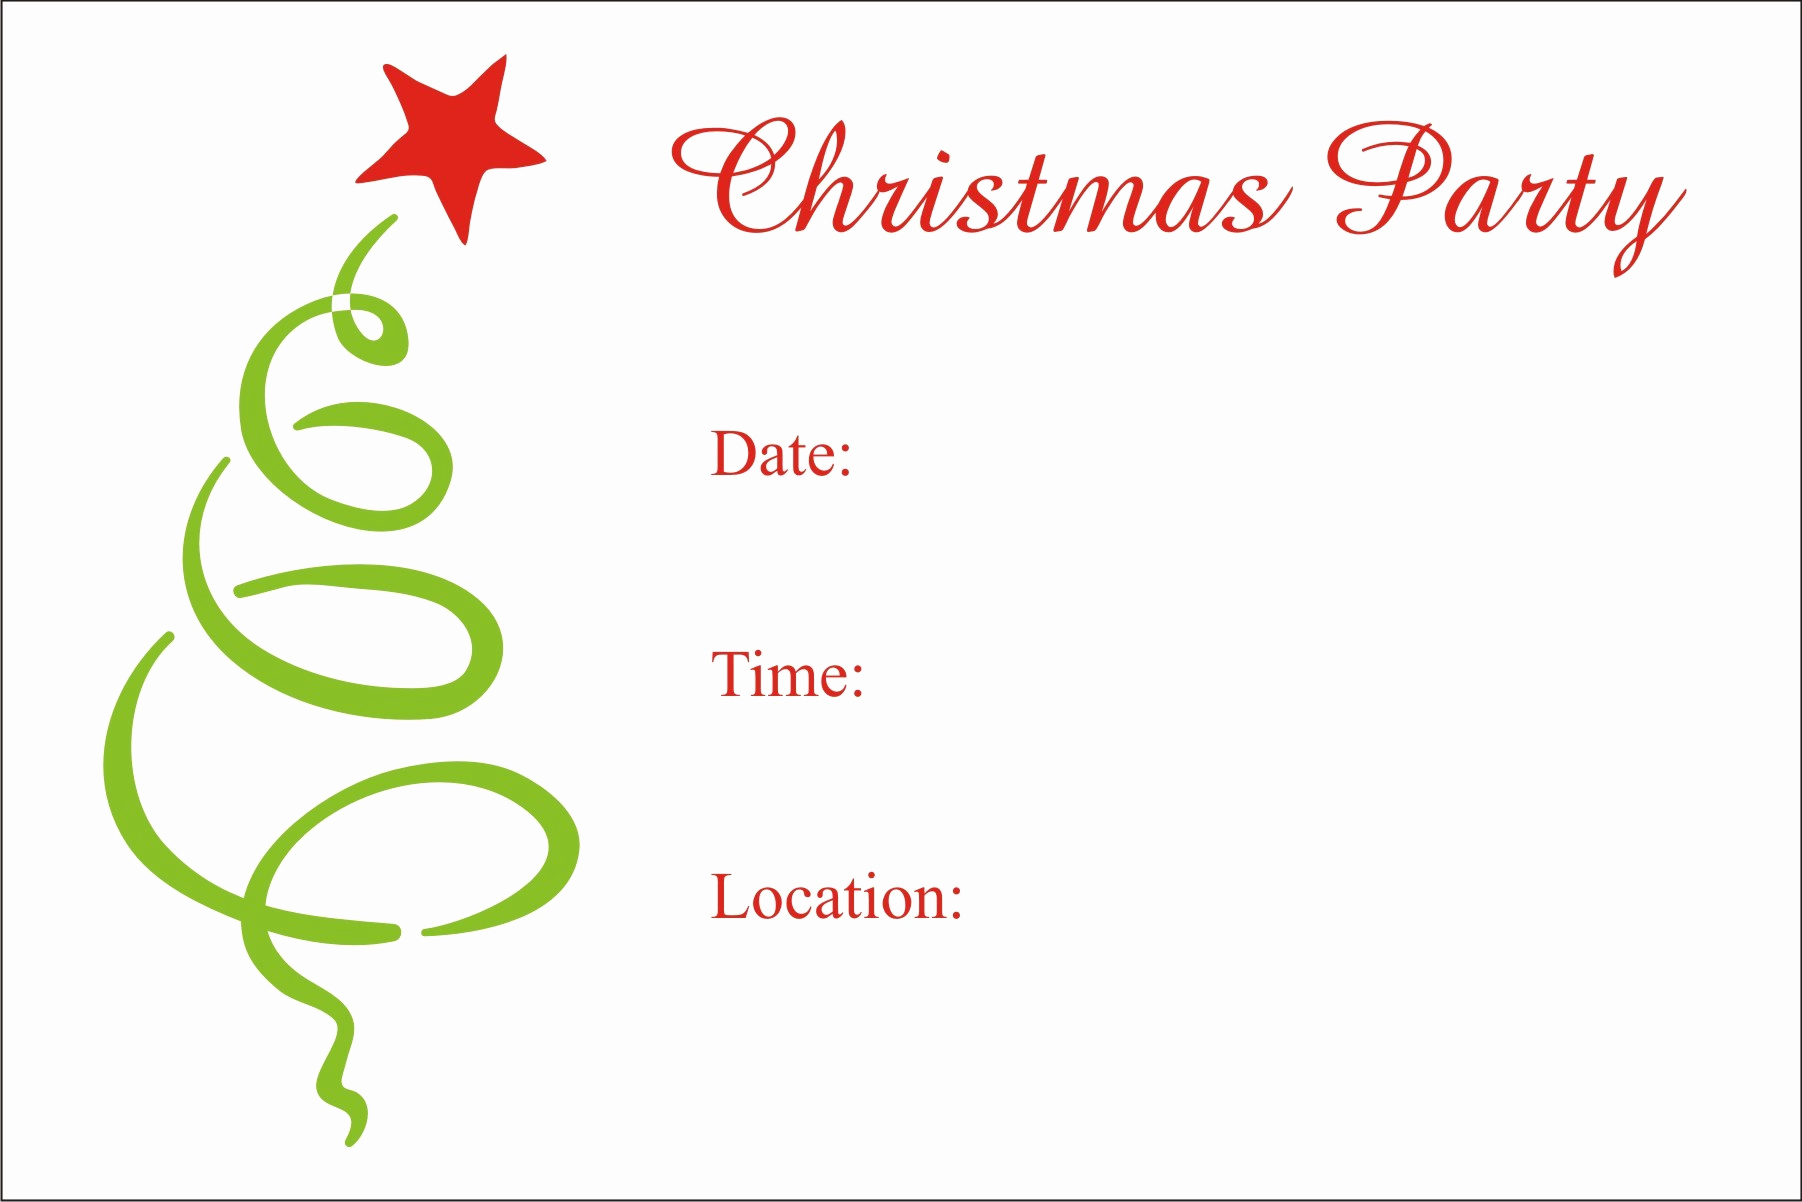 Free Christmas Party Invitation Templates New Christmas Party Free Printable Holiday Invitation